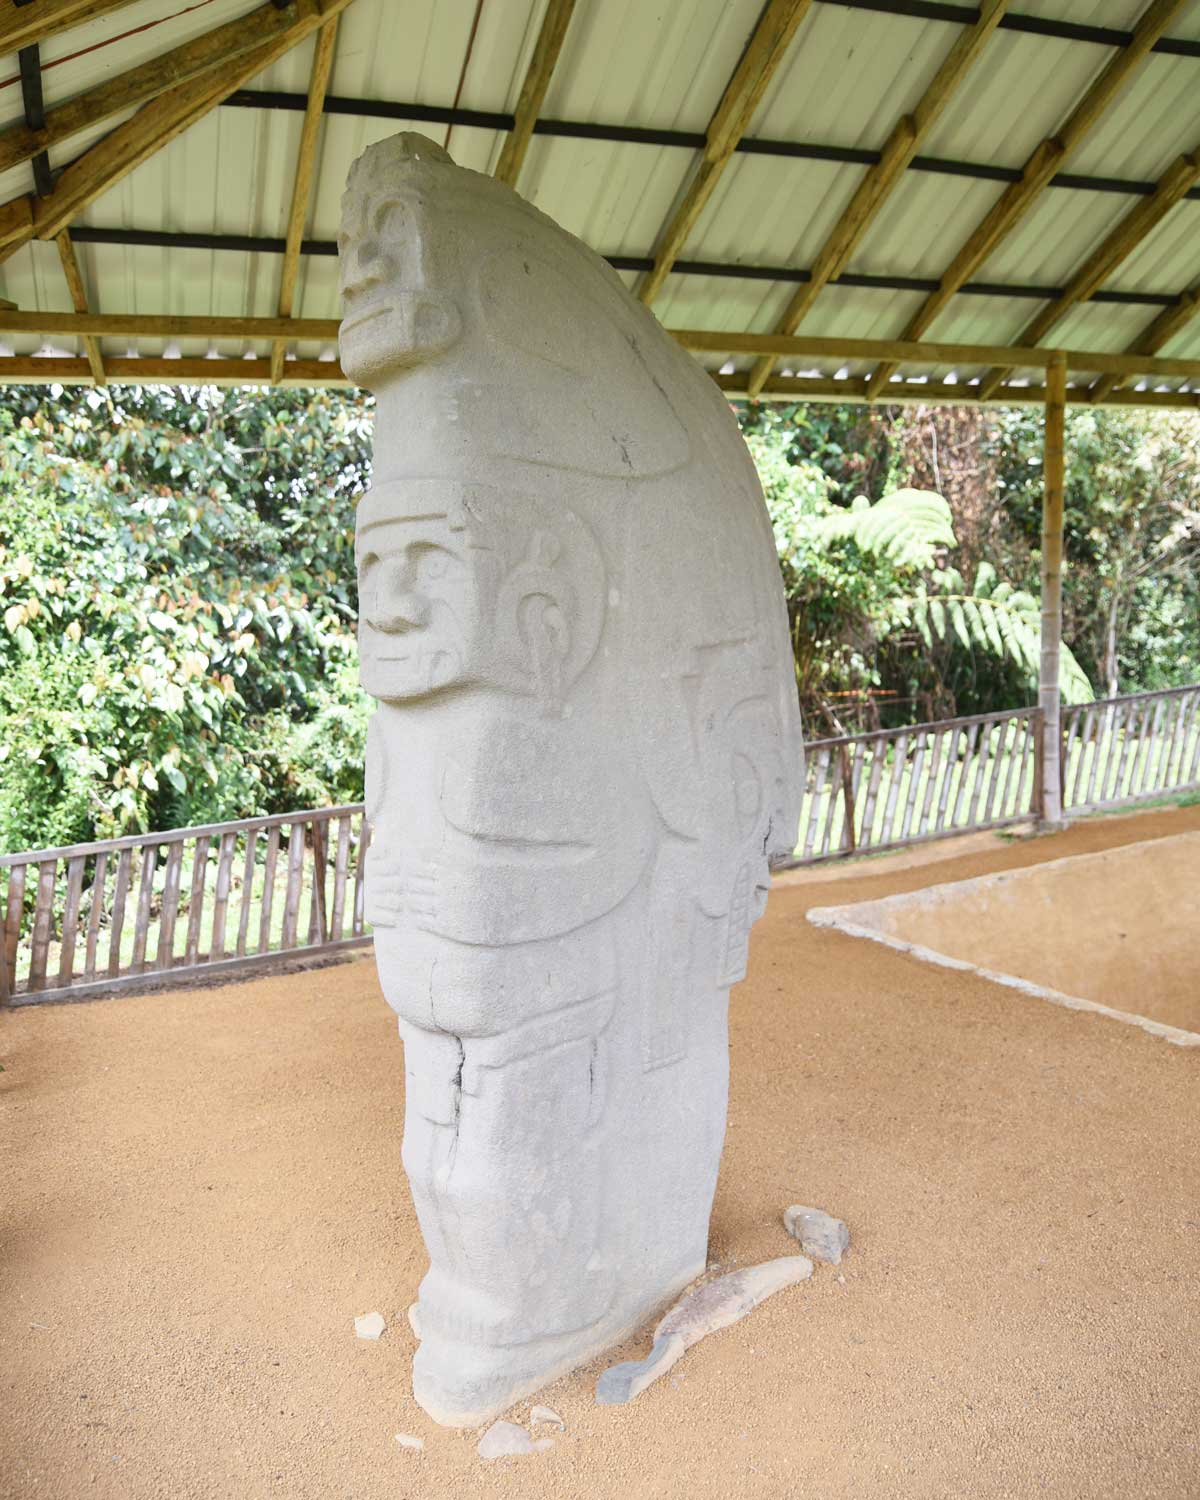 Interesting mix of animal and human characteristics on this statue; Alto de las Piedras, Isnos, Colombia   ©Angela Drake